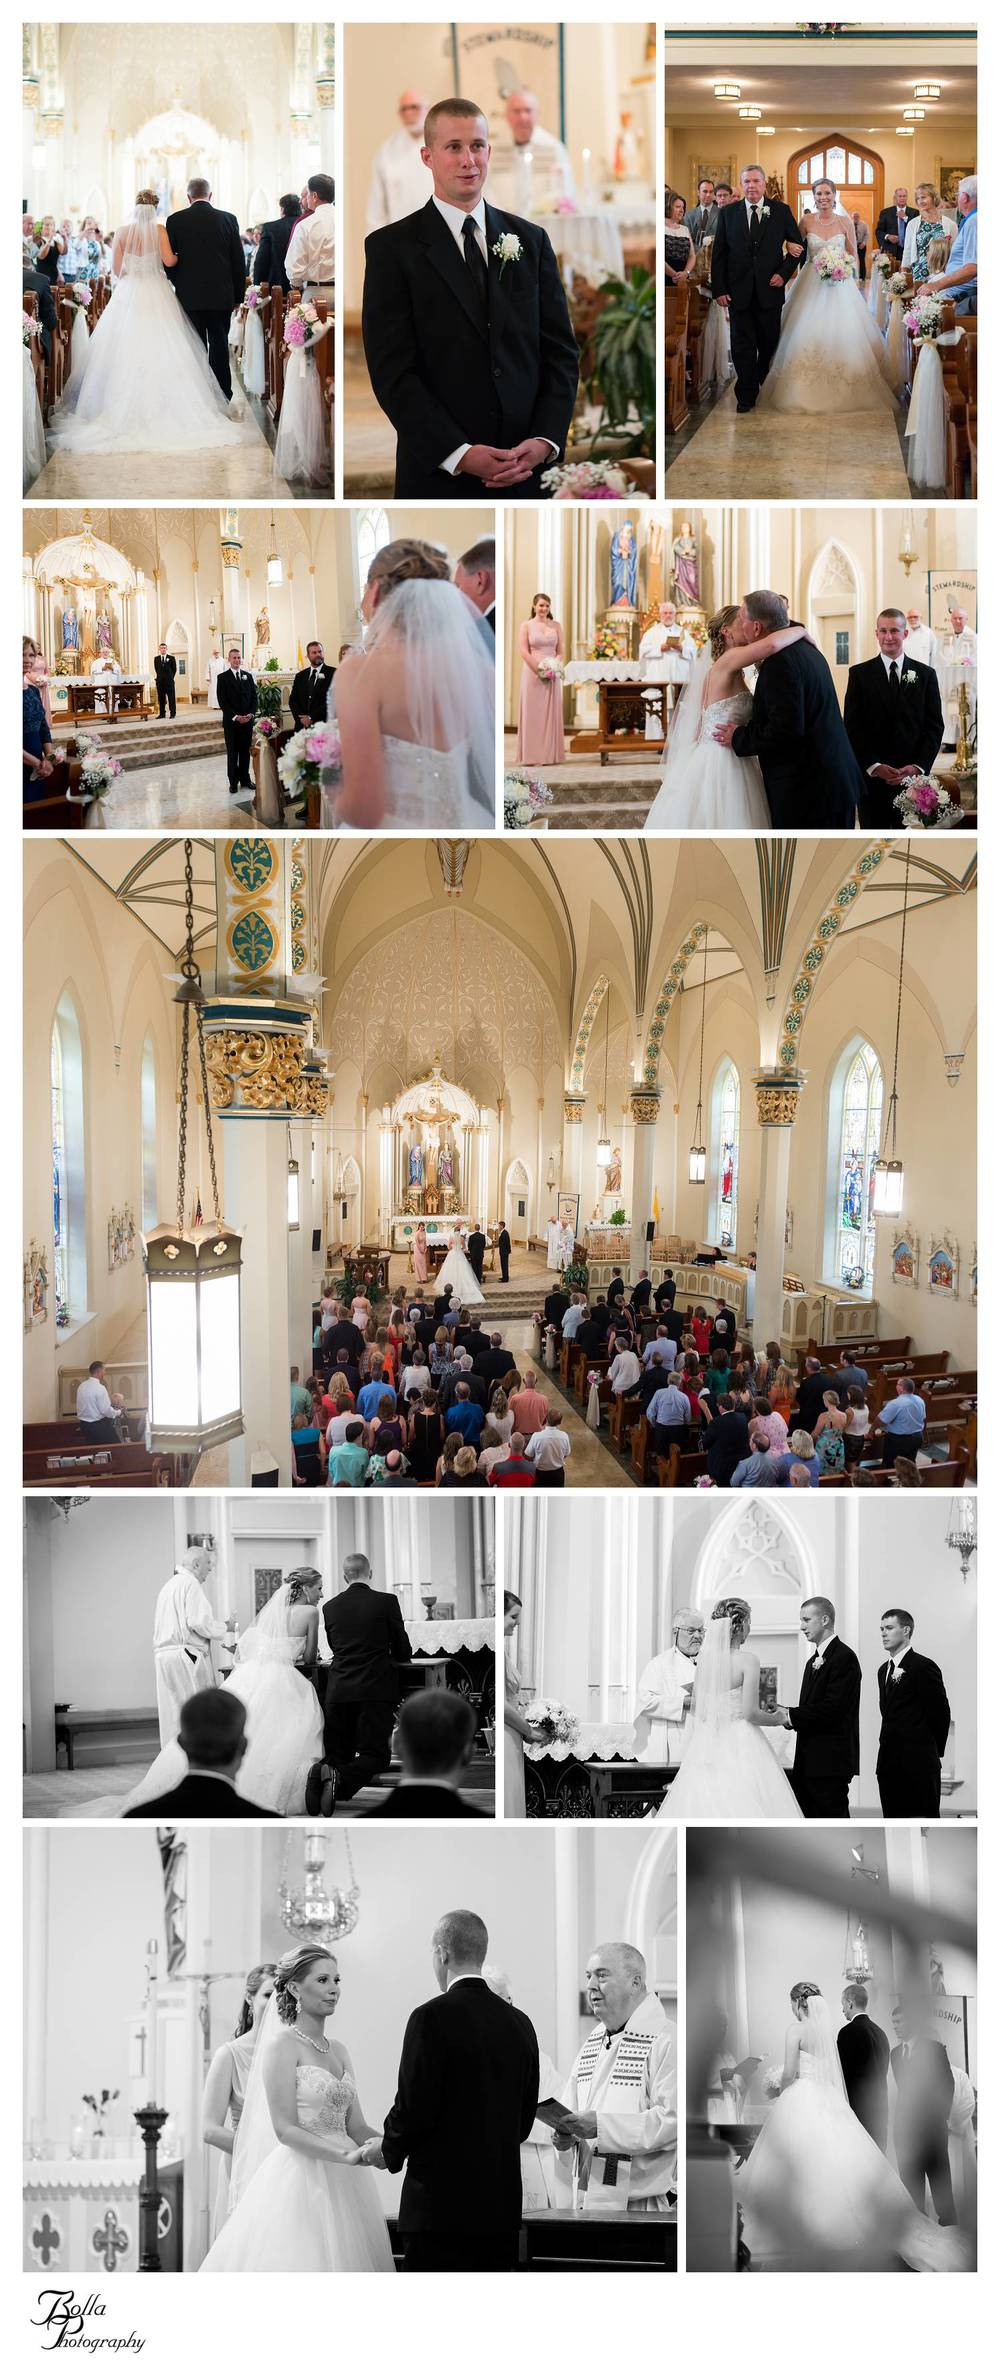 Bolla-photography-saint-louis-wedding-clinton-county-breese-il-4